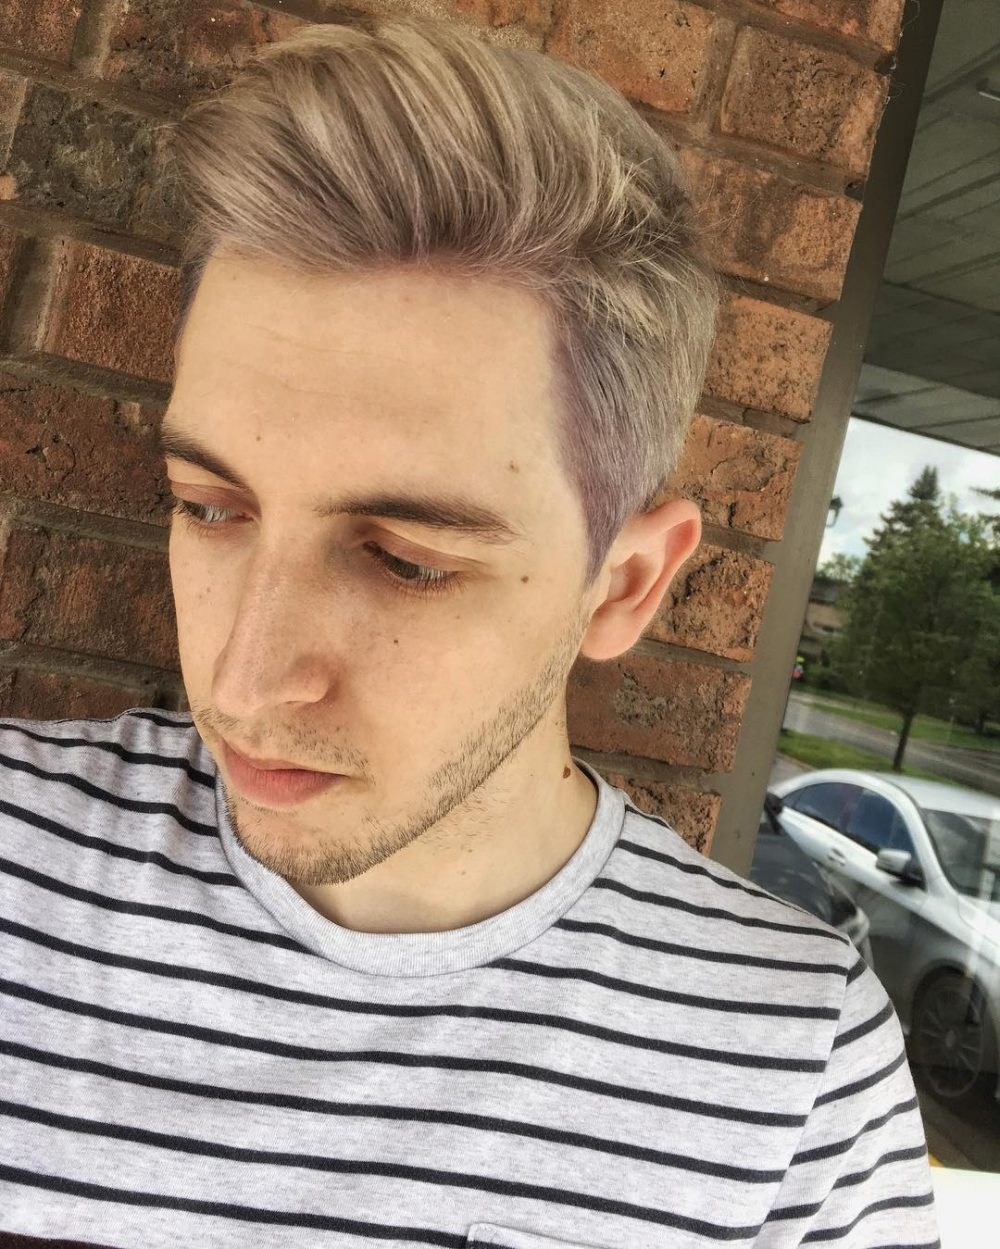 A nice silver ashy blonde hair color